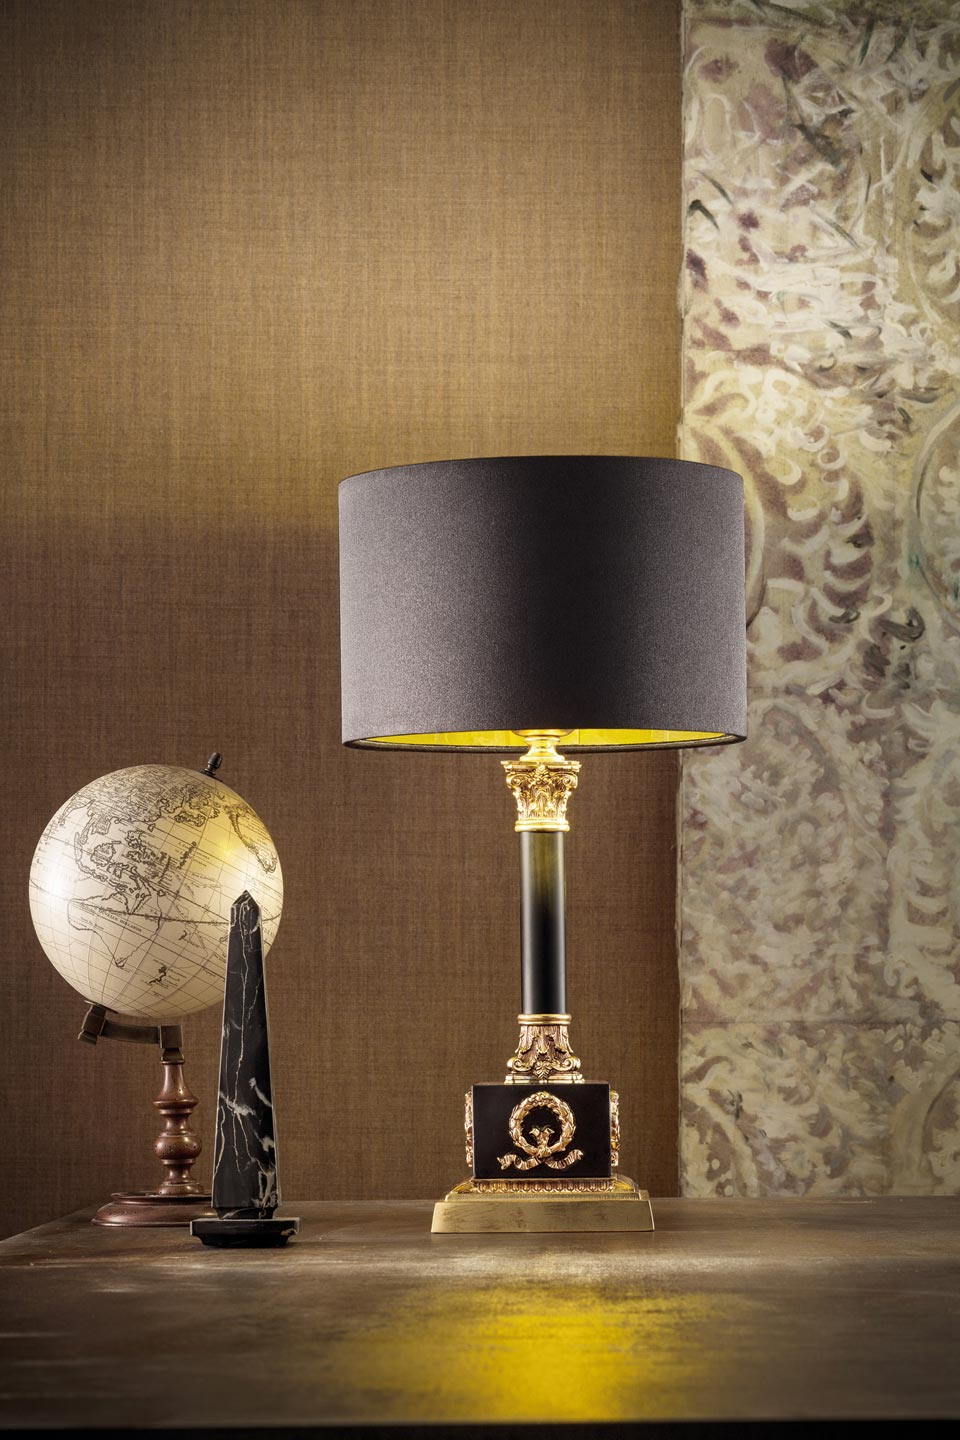 Table Lamp 1 Light Black And Gold Masiero Murano And Crystal Chandeliers Lamps And Wall Lights Ref 20020133